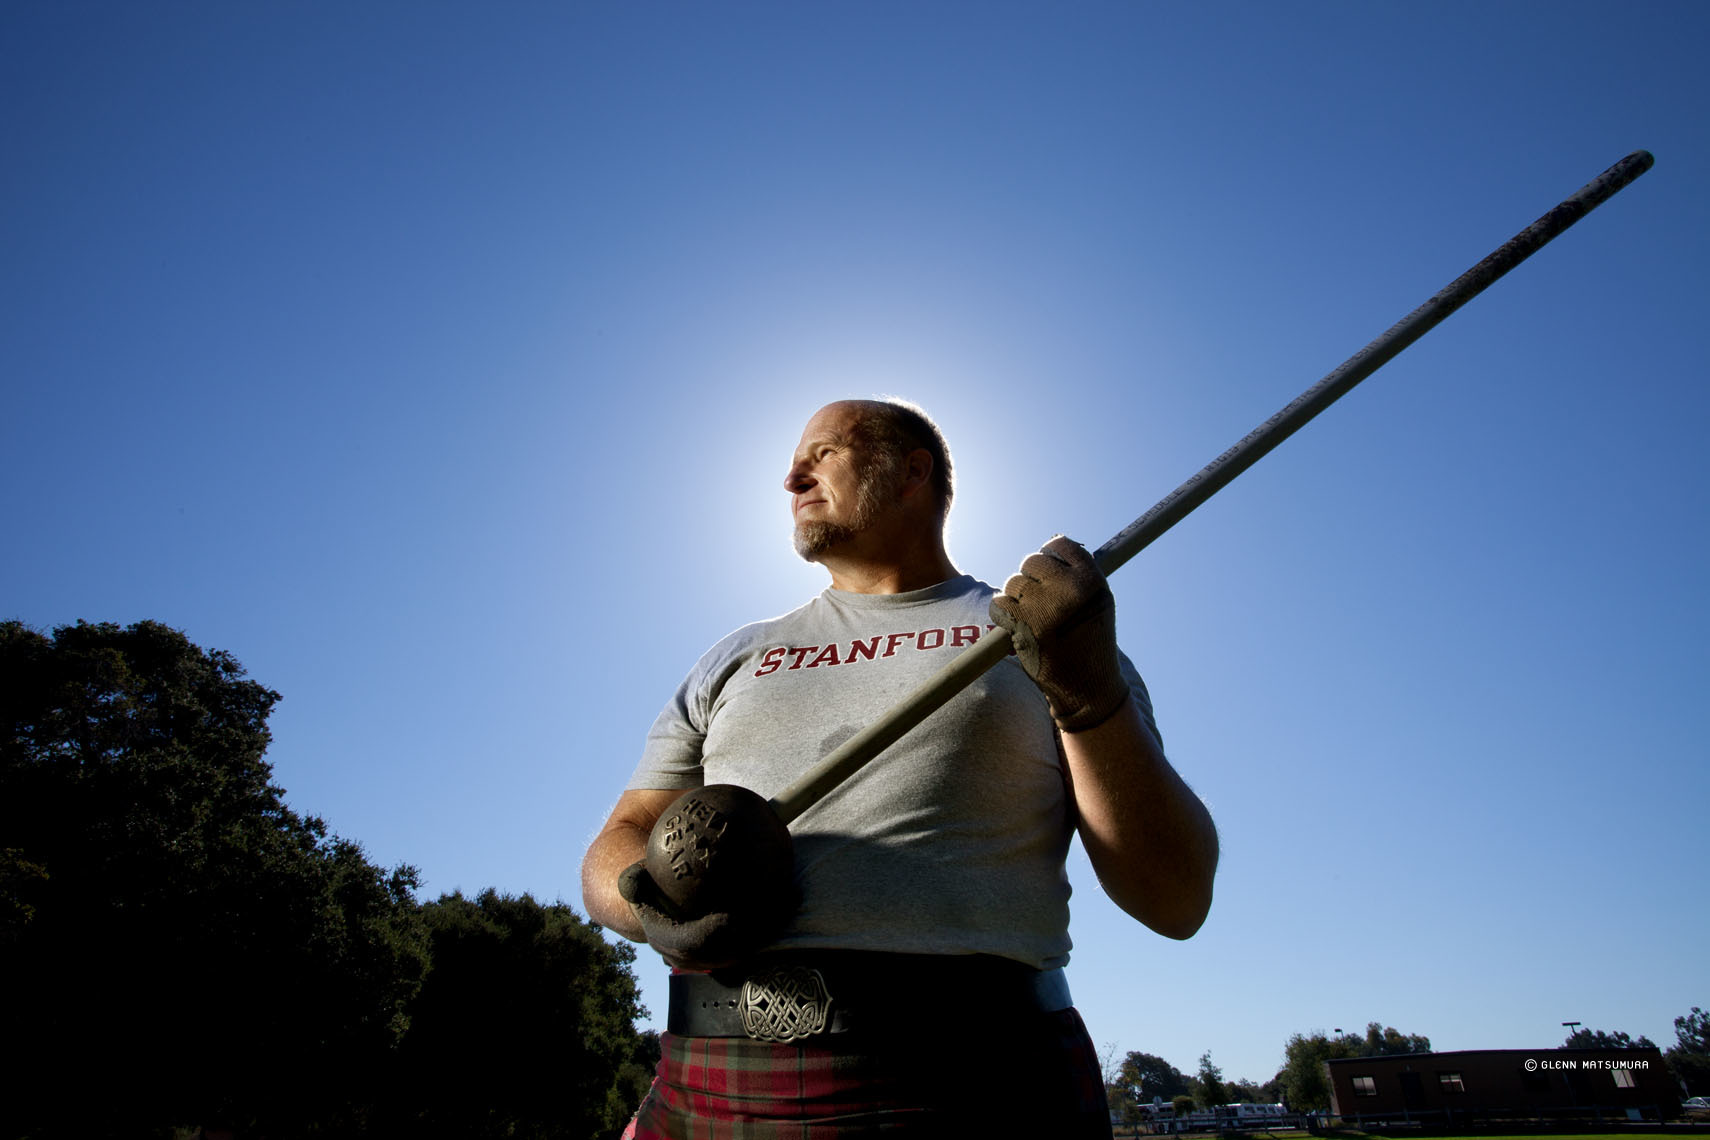 Alan Hebert holding a Scottish hammer, practices for the Scottis